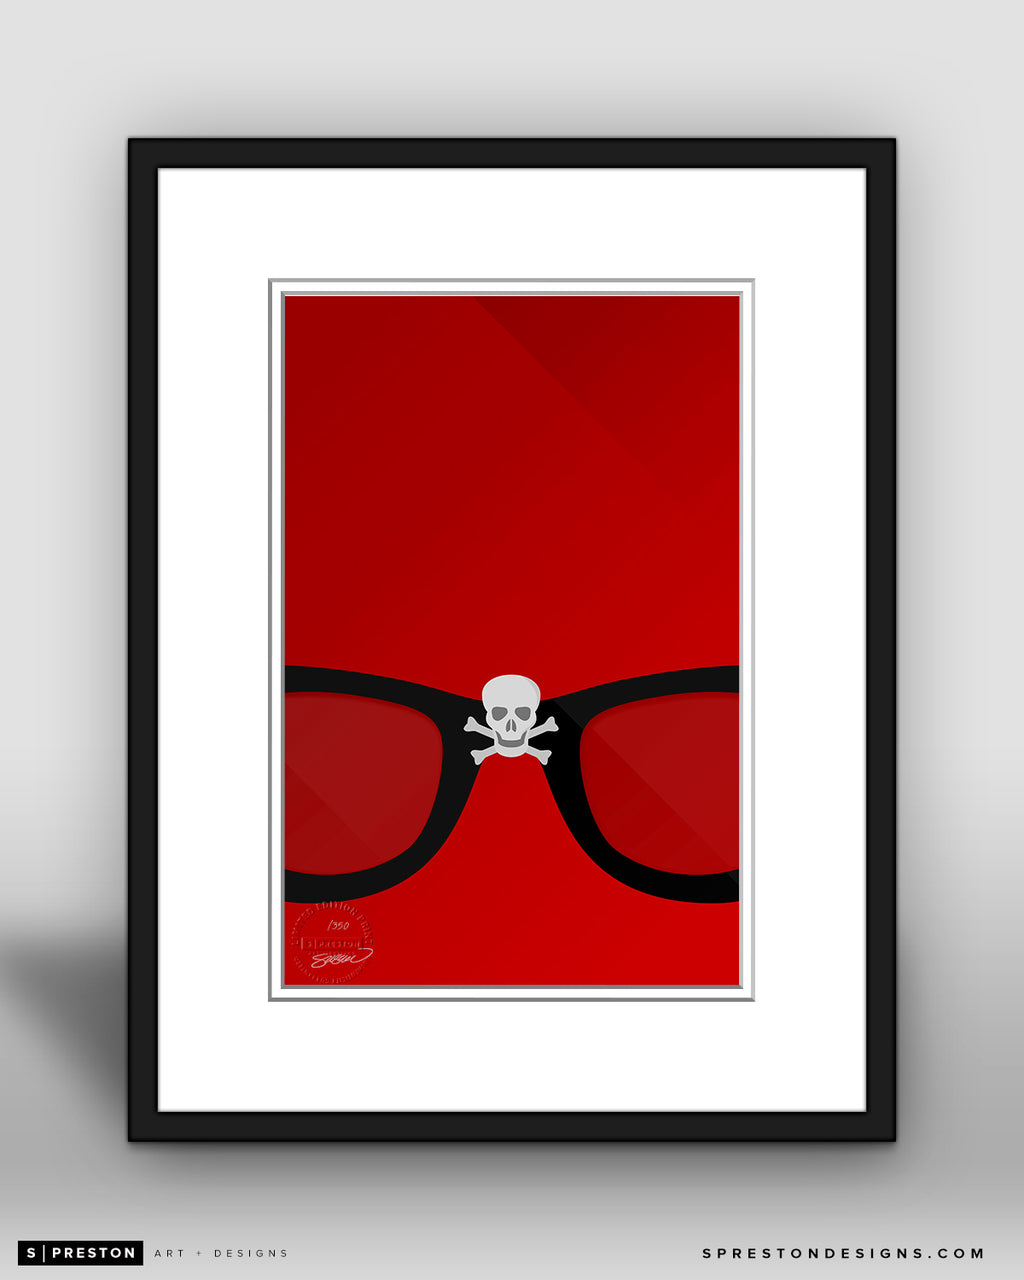 Minimalist Movies - Major League - Cleveland Indians - S. Preston